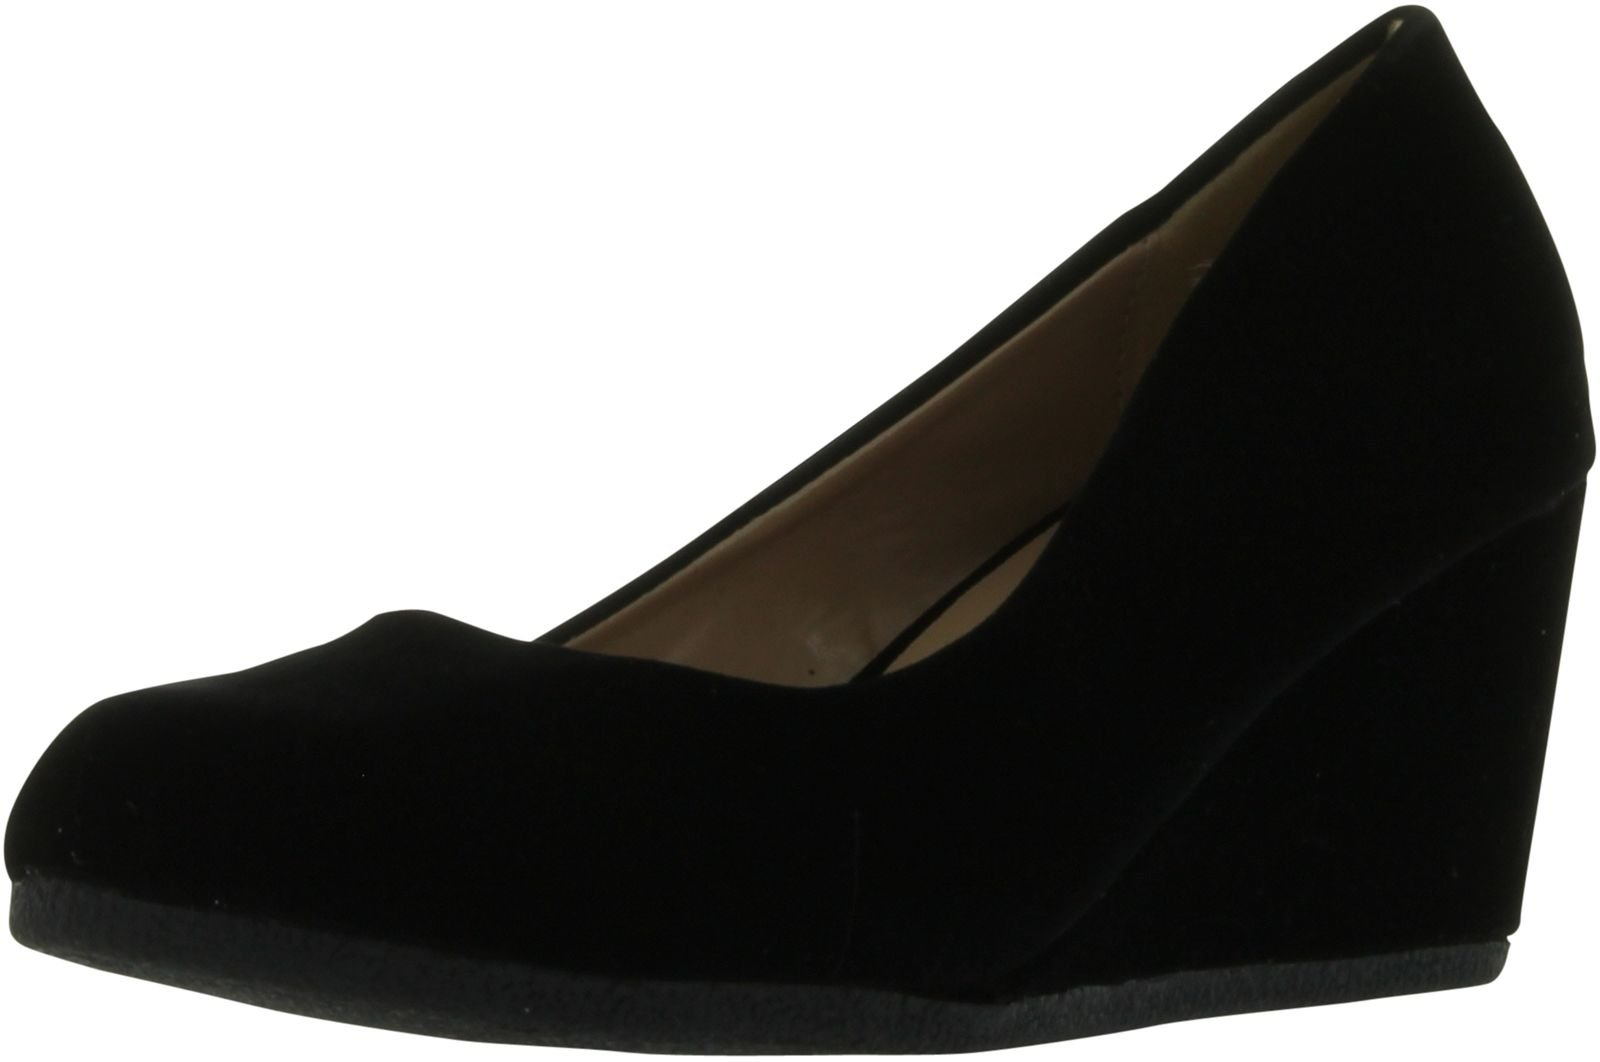 Forever Link Women's Patricia-02 Wedge Pumps Shoes,Black Suede,10